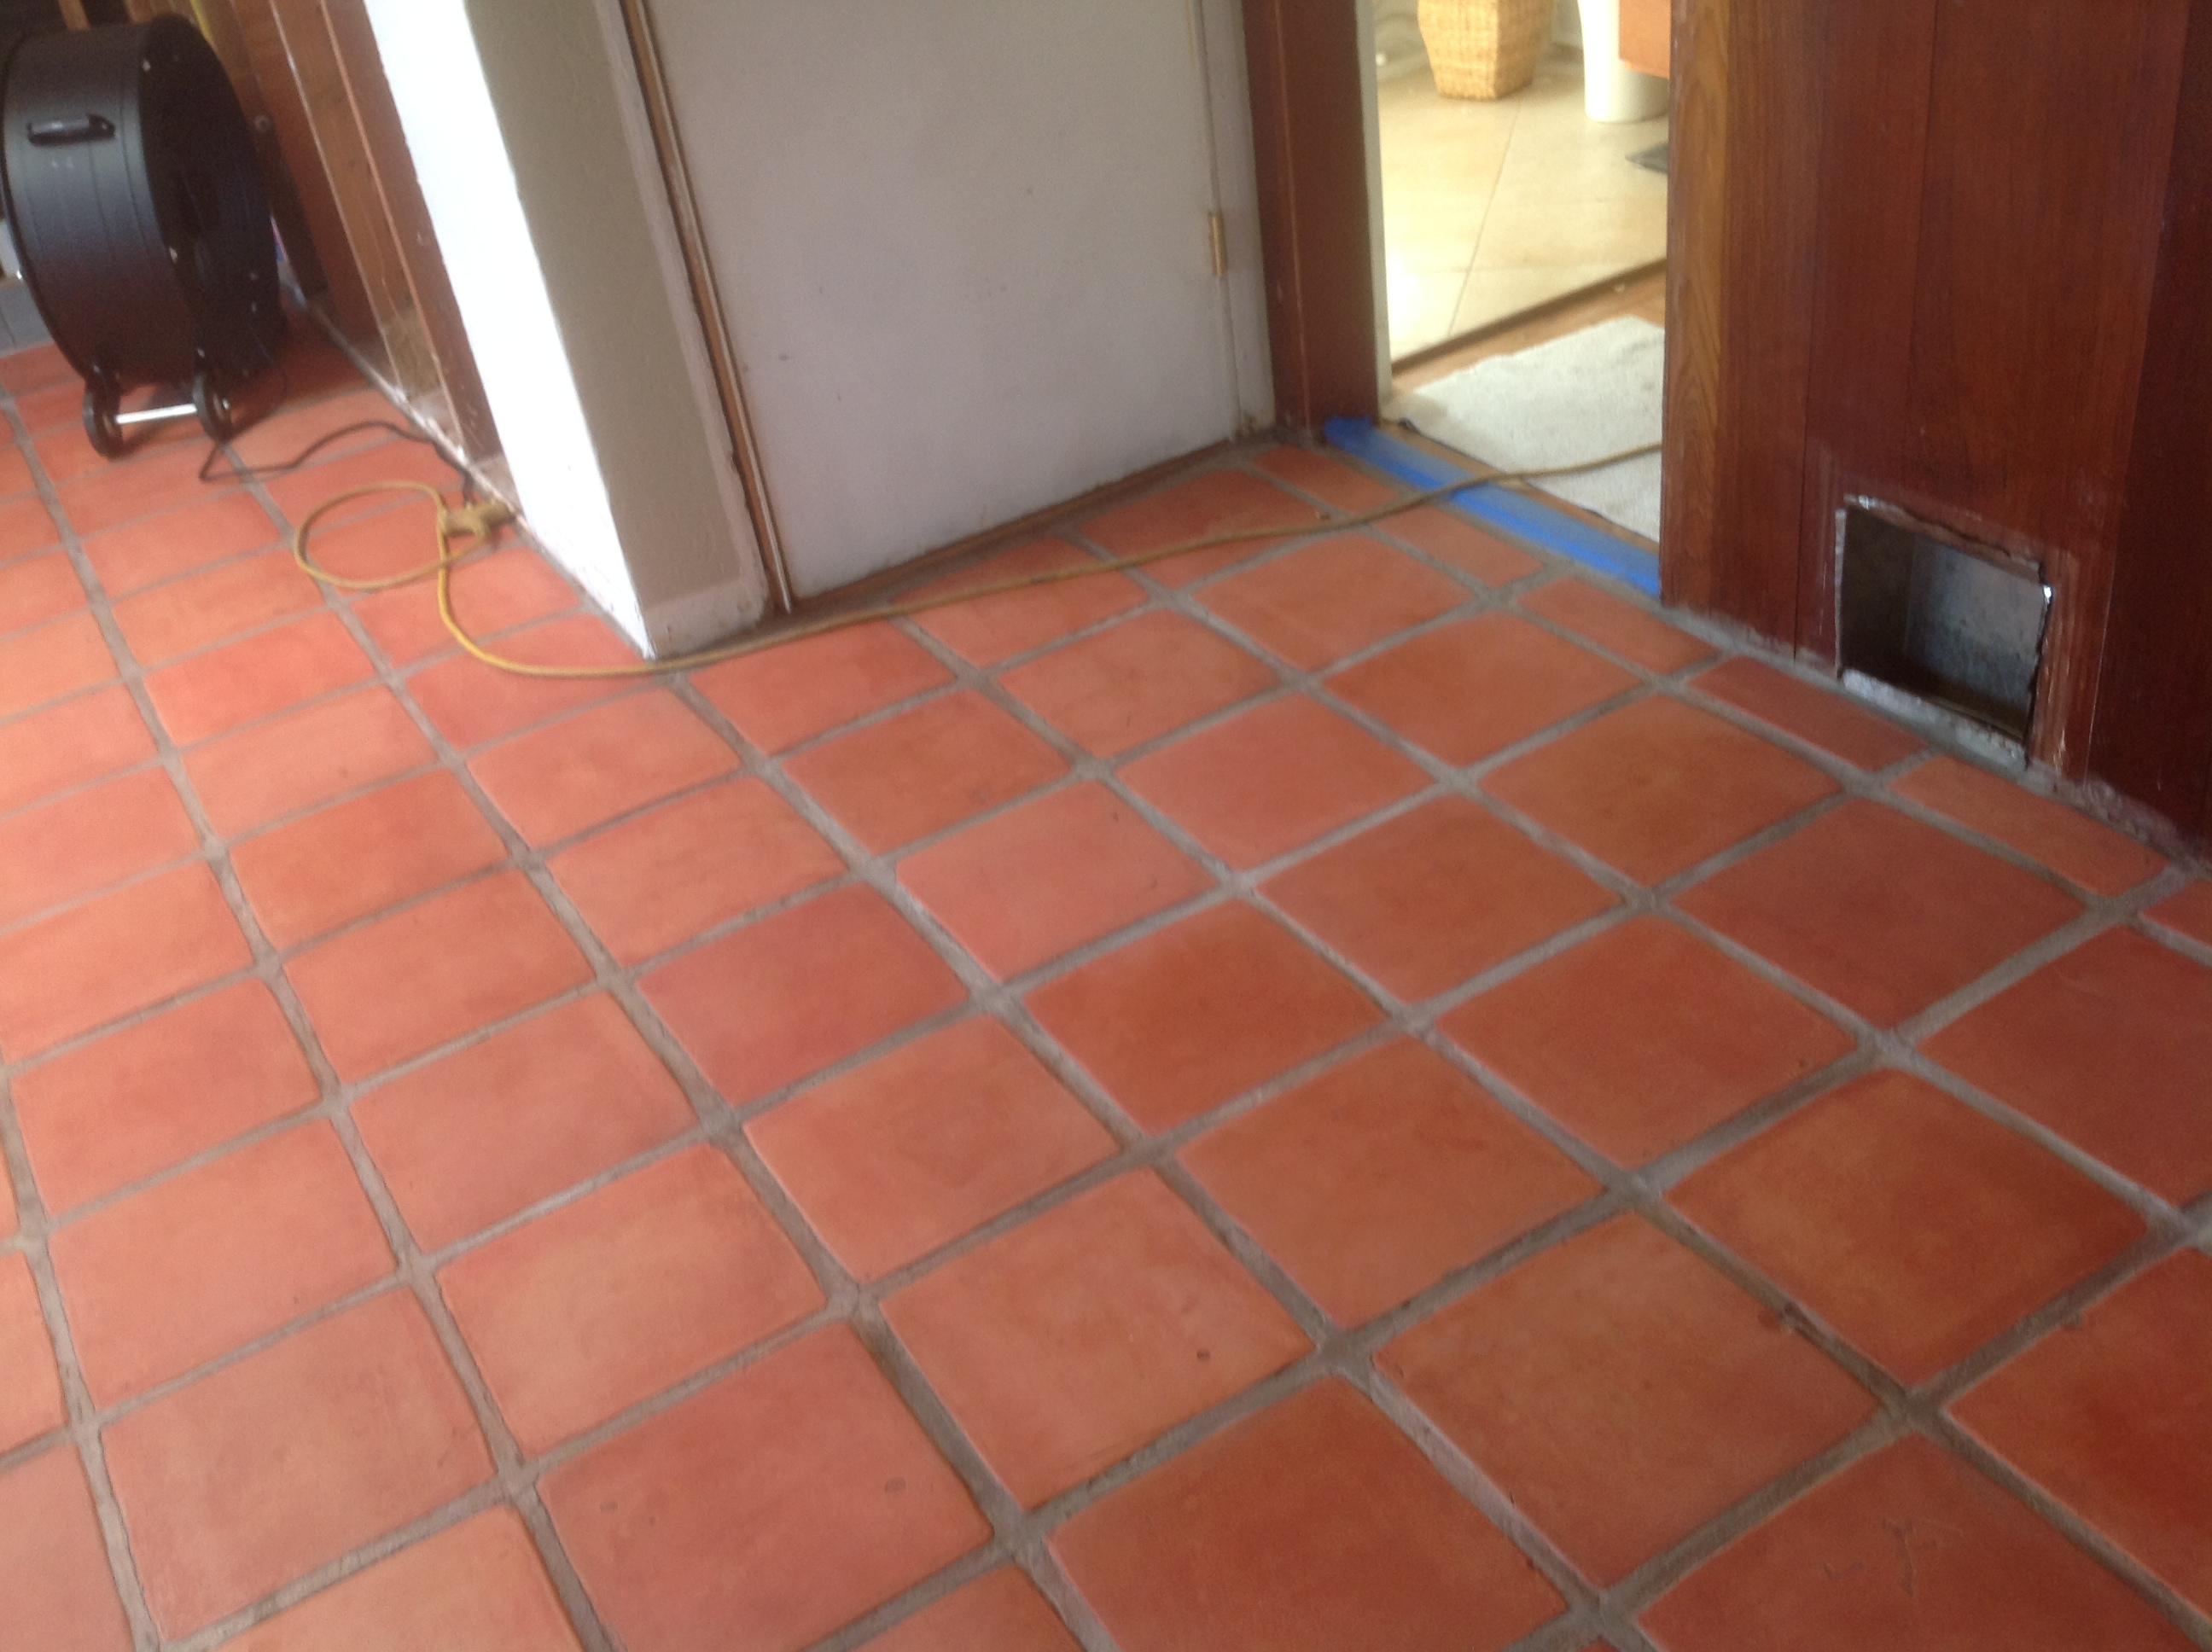 Staining and sealing saltillo tile the correct way california stained raw saltillo tile dailygadgetfo Gallery